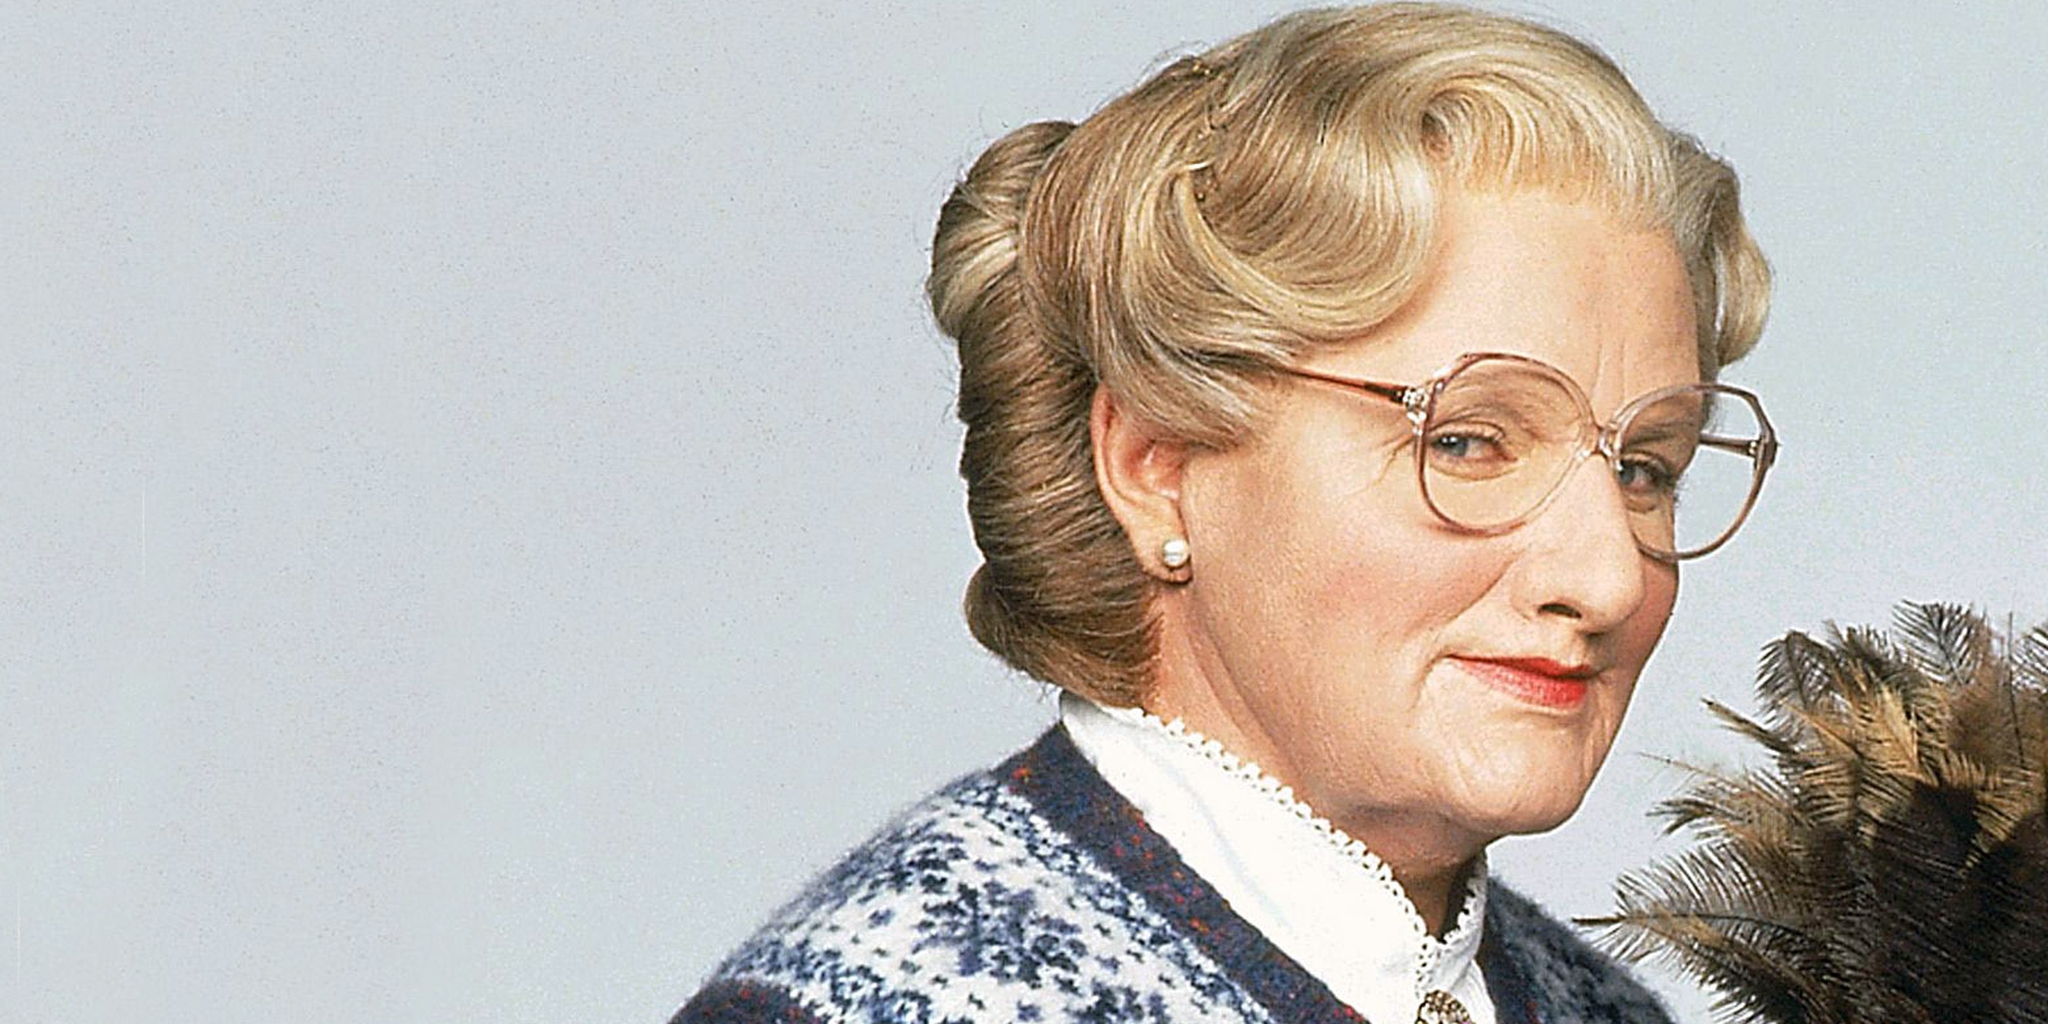 High Resolution Wallpaper | Mrs. Doubtfire 2048x1024 px